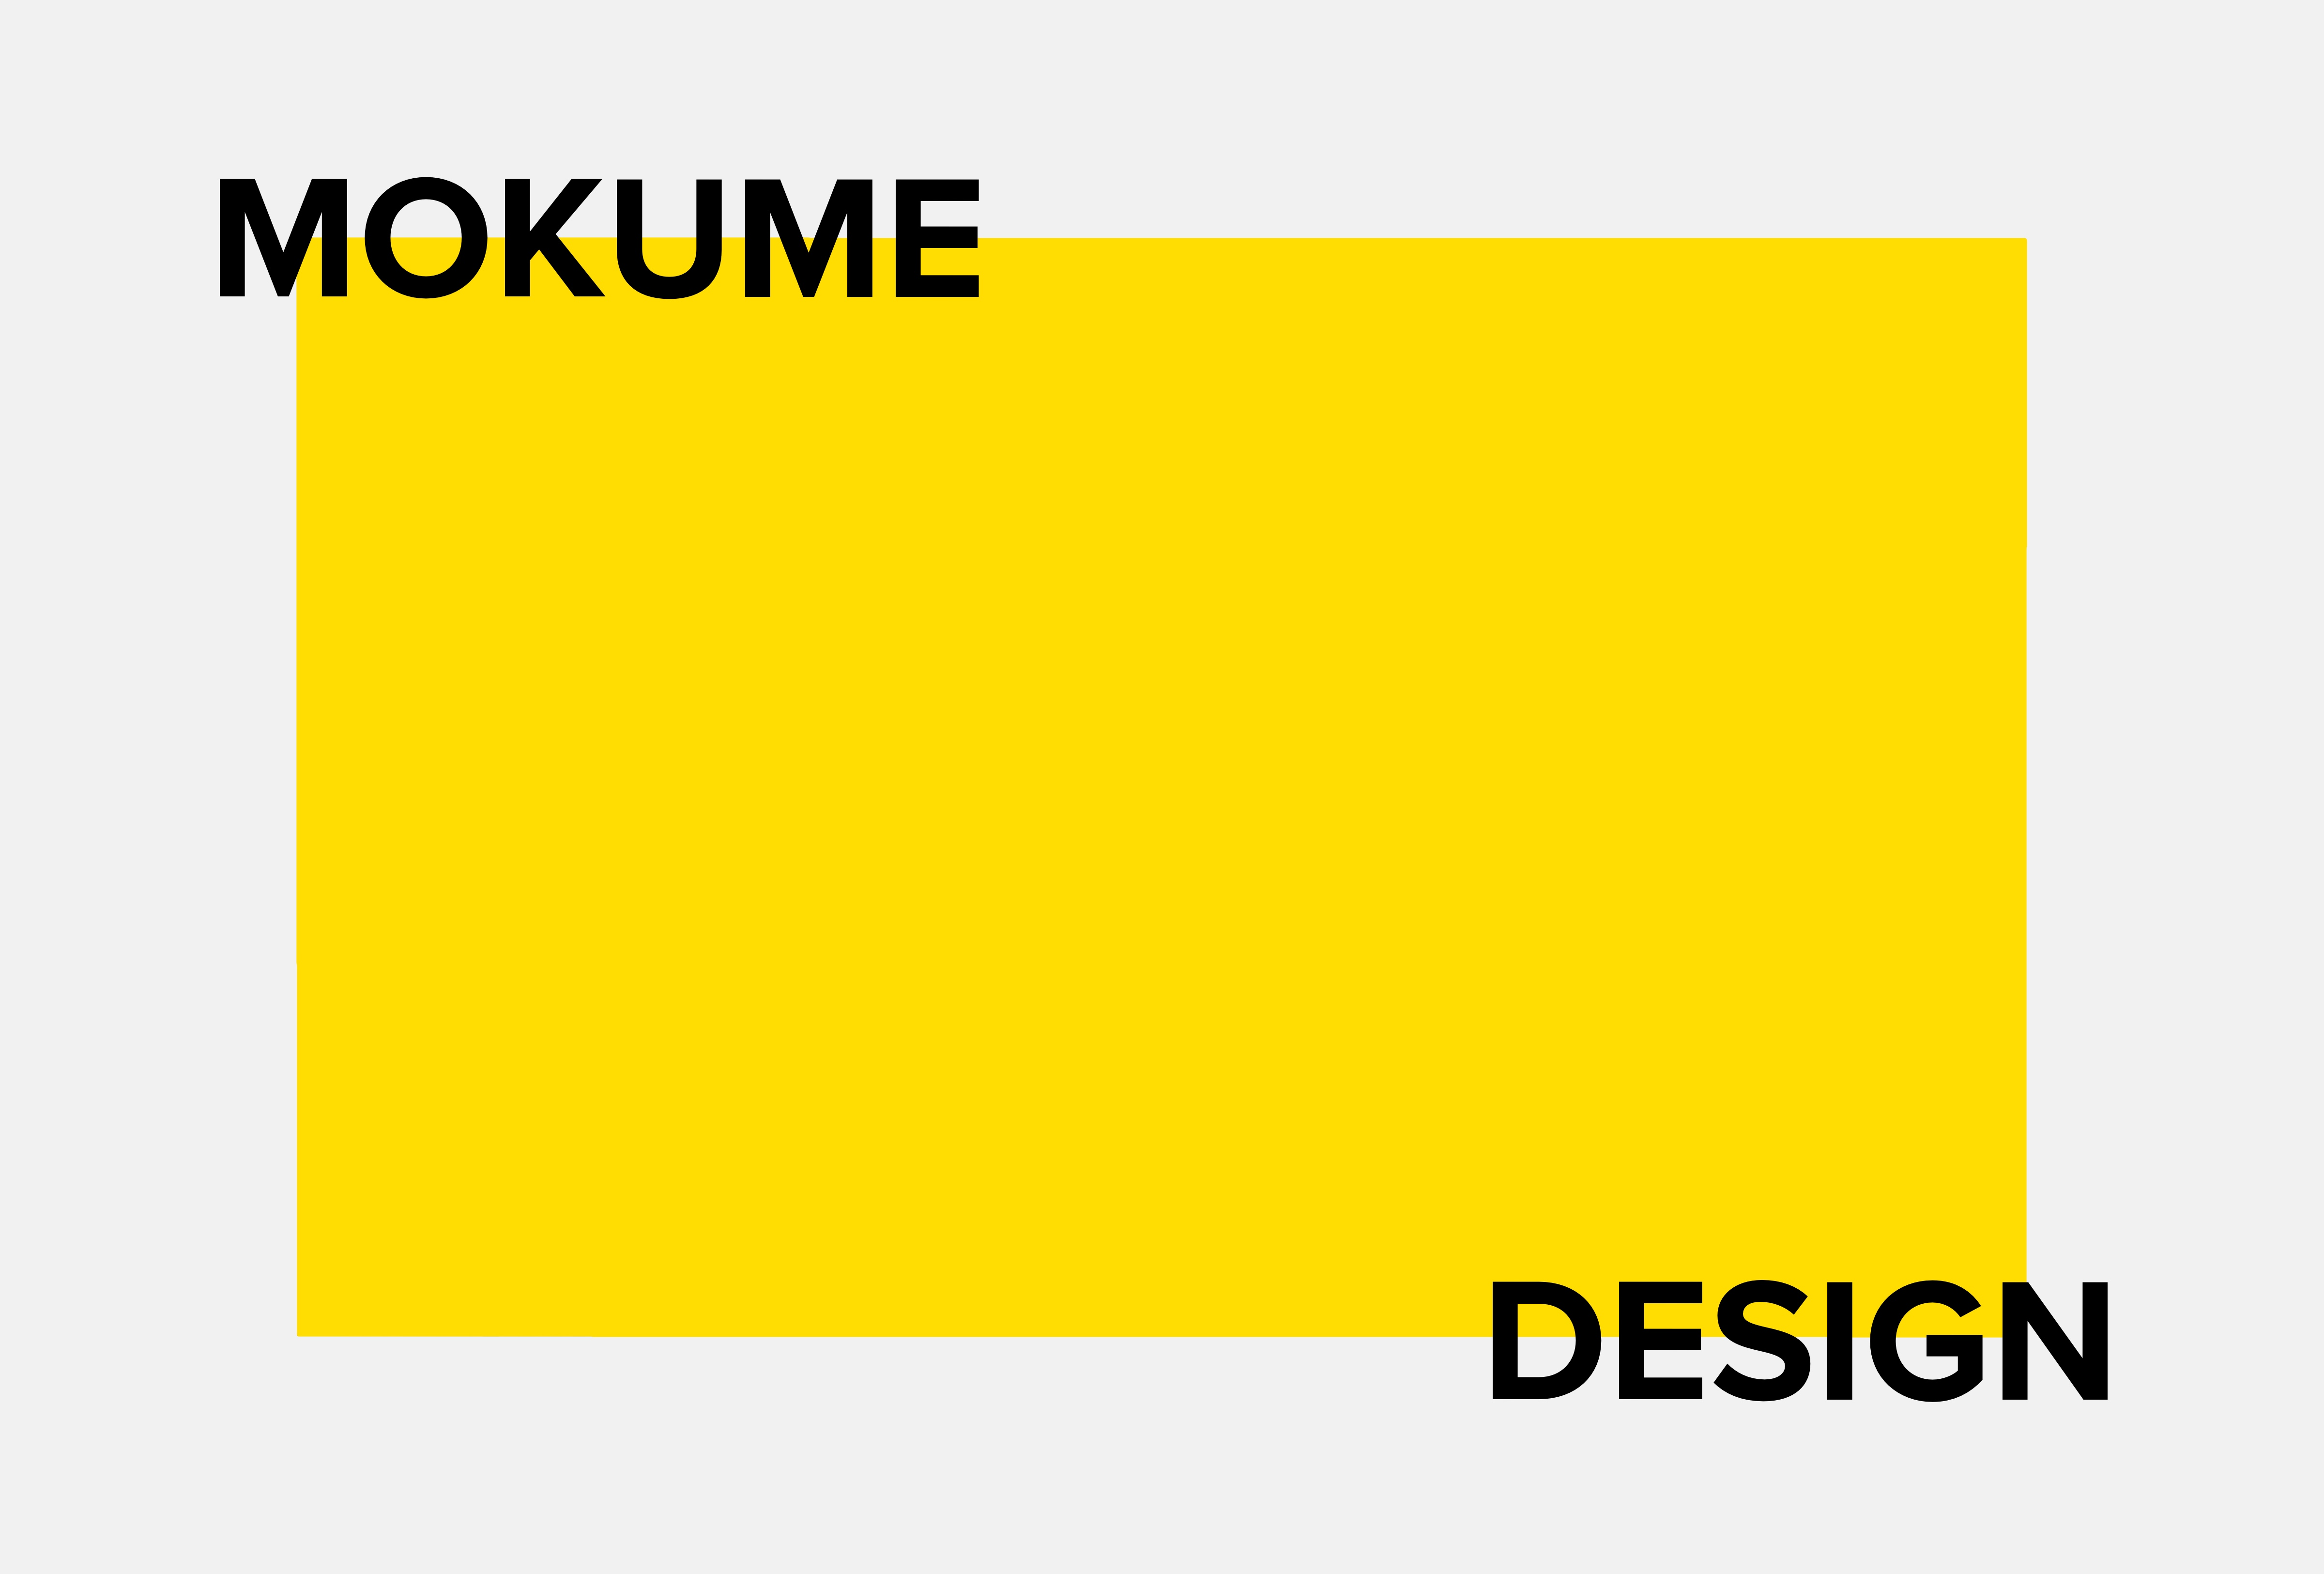 Mokume Design Studio